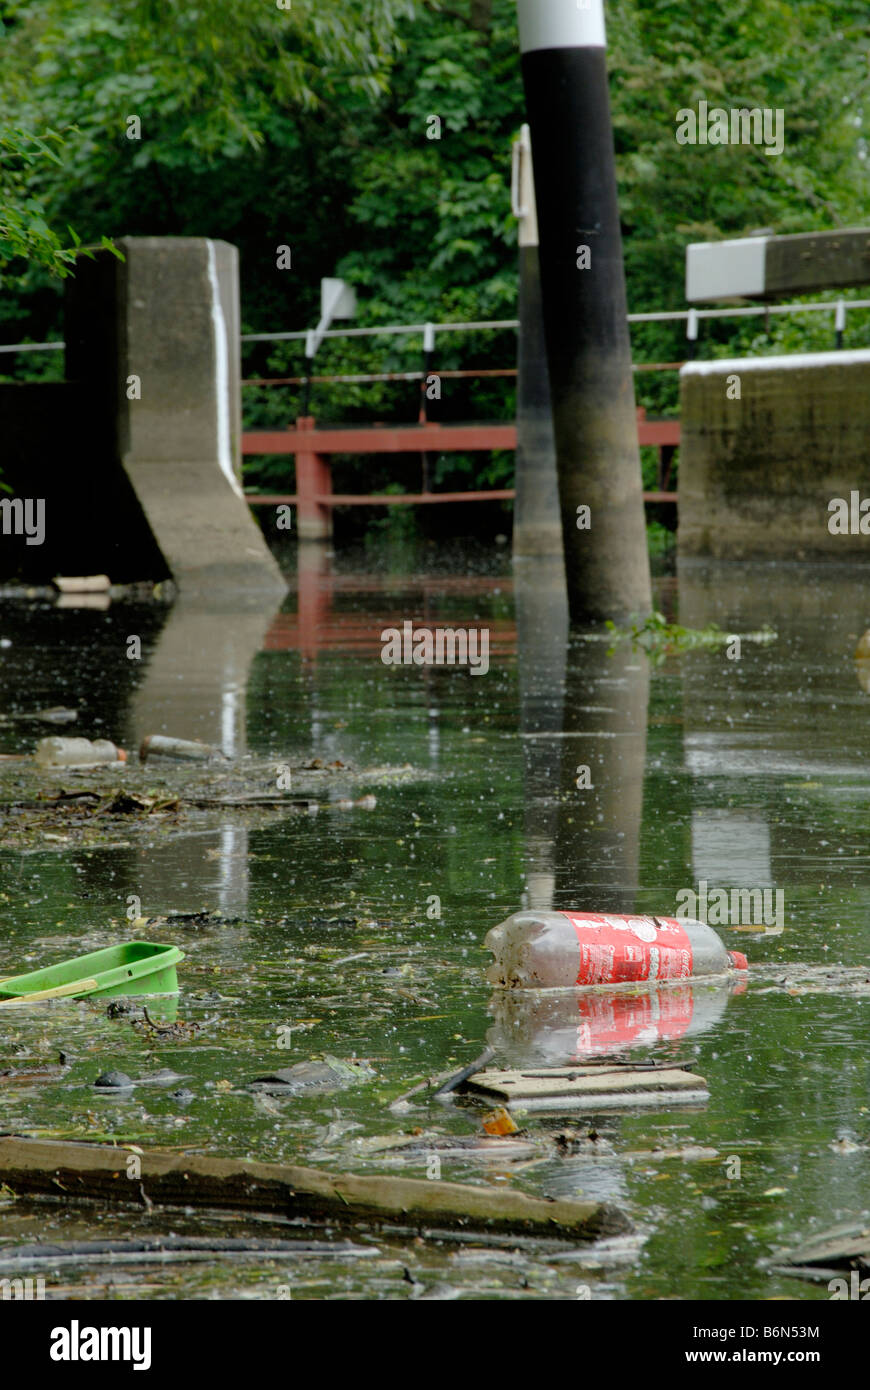 River pollution: plastic bottles, tubs, wood and deadfall floating on surface of River Wey with lock gates behind, - Stock Image